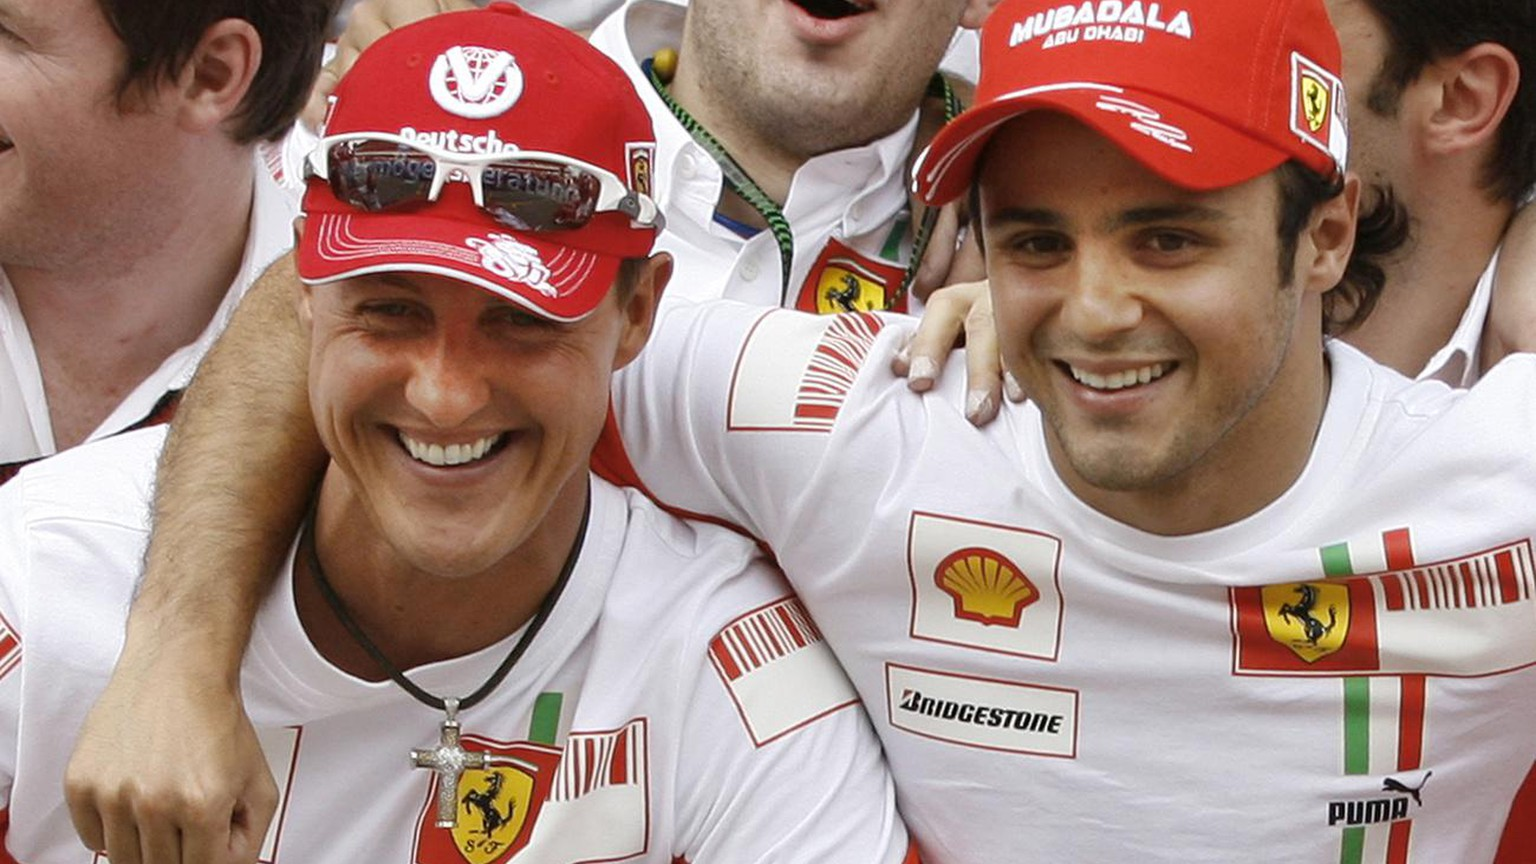 Brazilian Ferrari Formula One driver Felipe Massa, right, hugs former Ferrari star and seven times world champion Michael Schumacher, left, after winning the Spanish Grand Prix at the Montmelo racetrack near Barcelona, Spain, Sunday, May 13, 2007. Schumacher now works as a Ferrari motorsport consultant. (AP Photo/Daniel Ochoa de Olza)